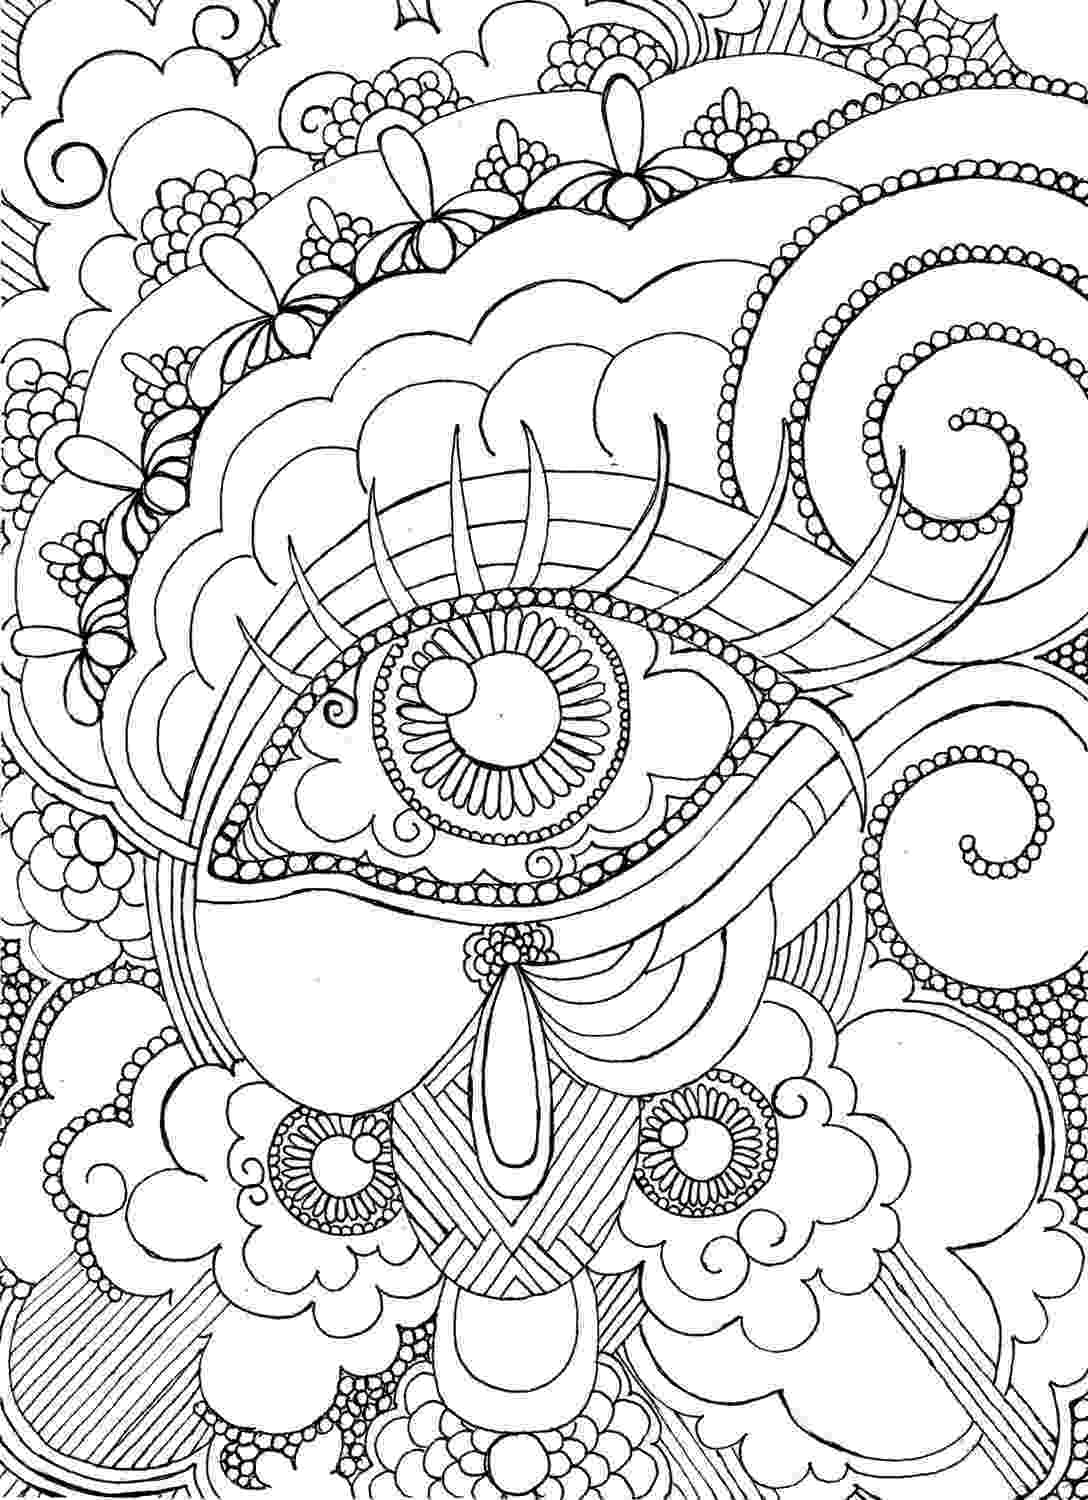 new colouring pages for adults hottest new coloring books december 2017 roundup new adults colouring pages for